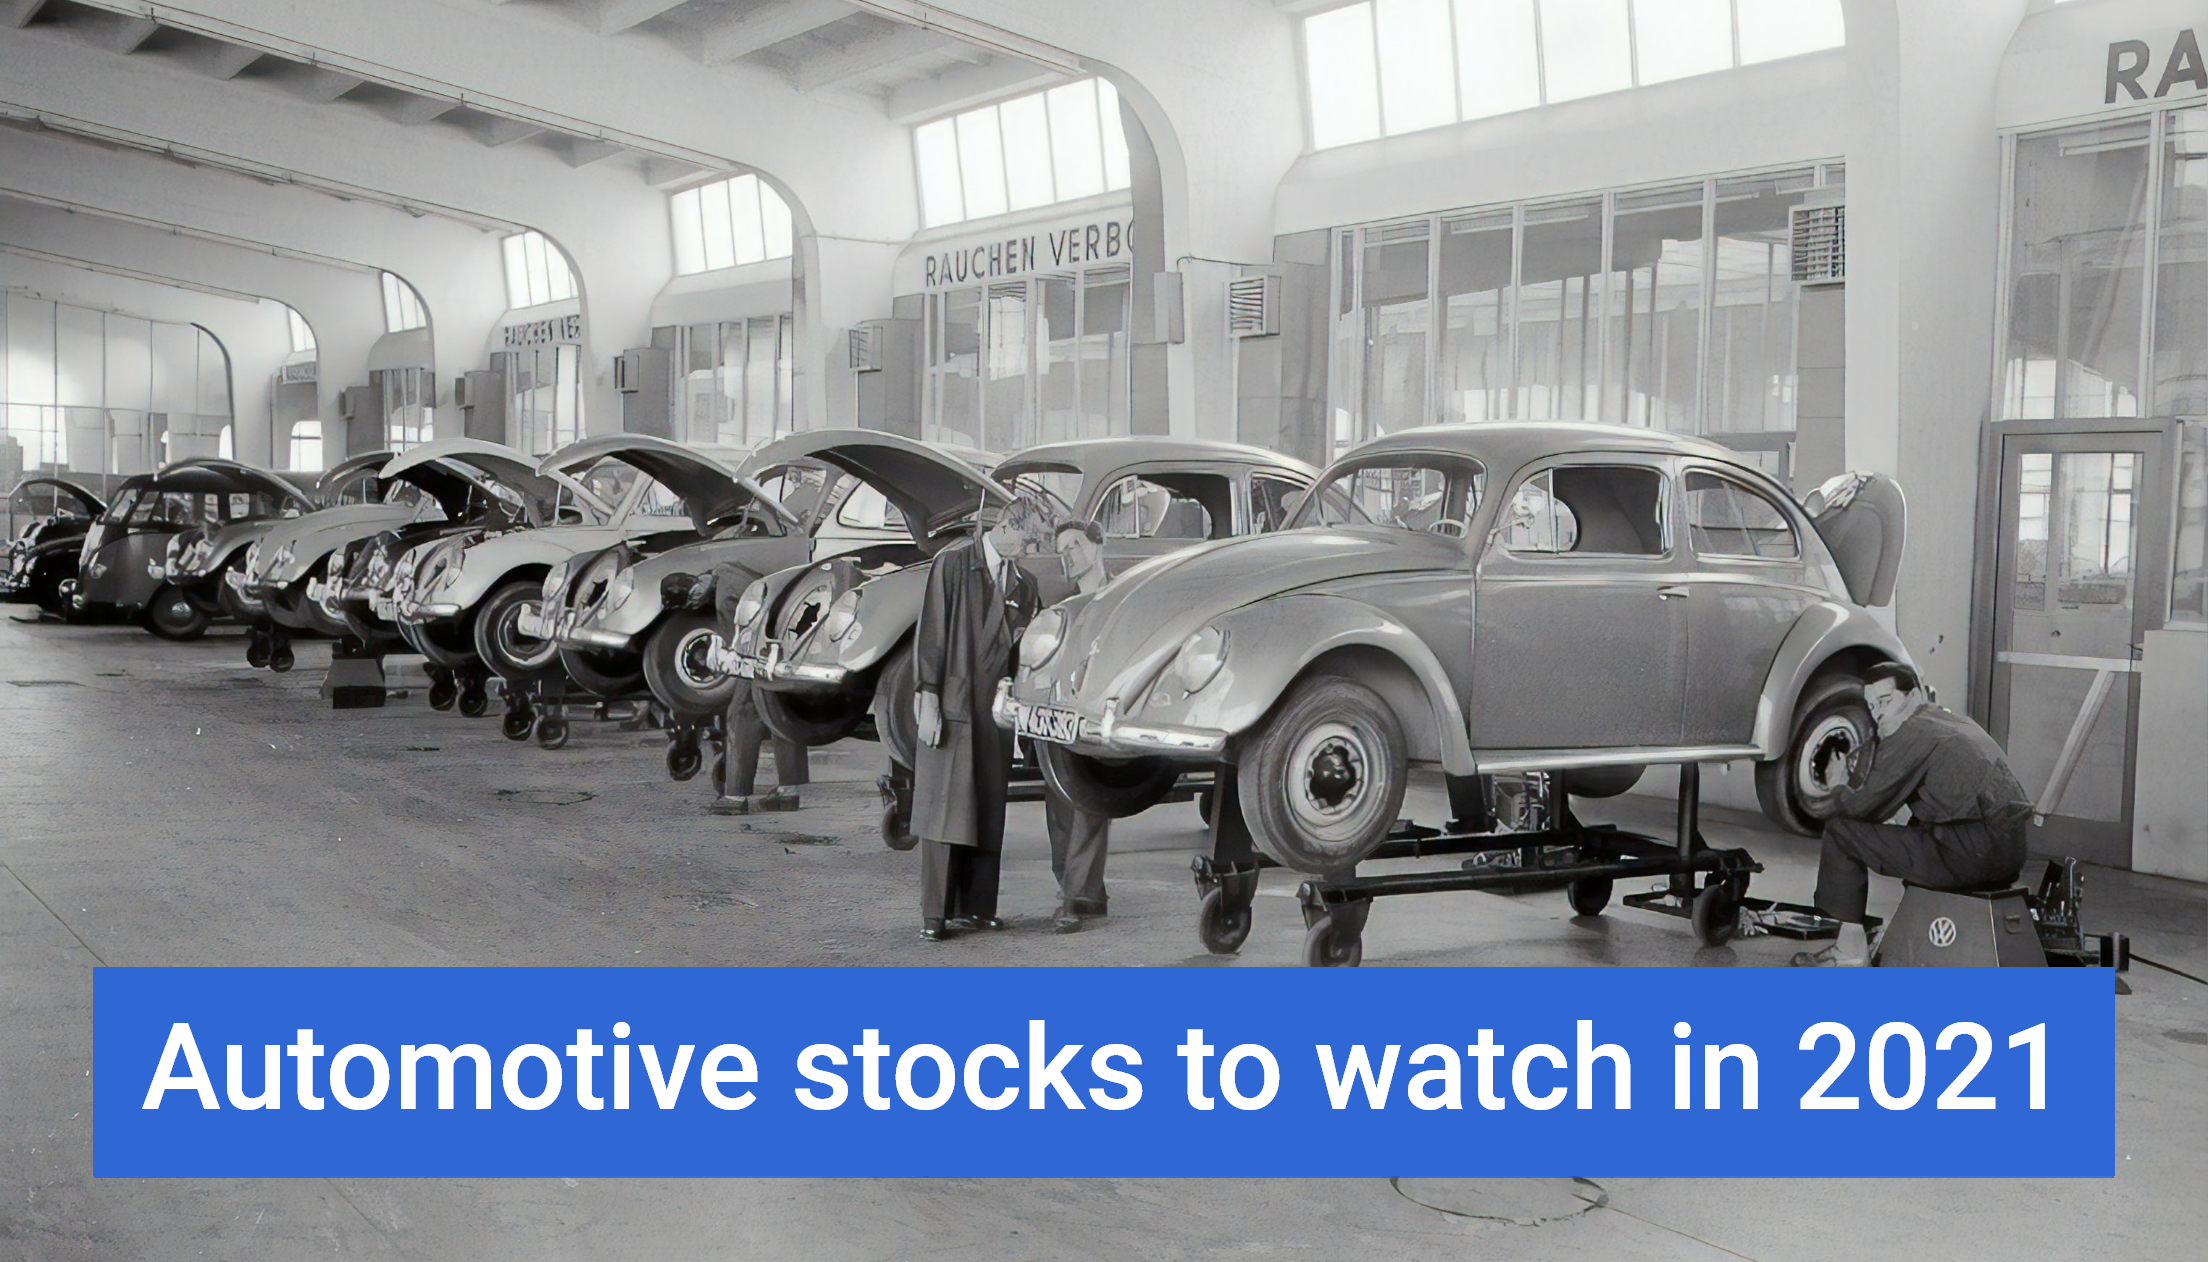 Automotive stocks to watch in 2021